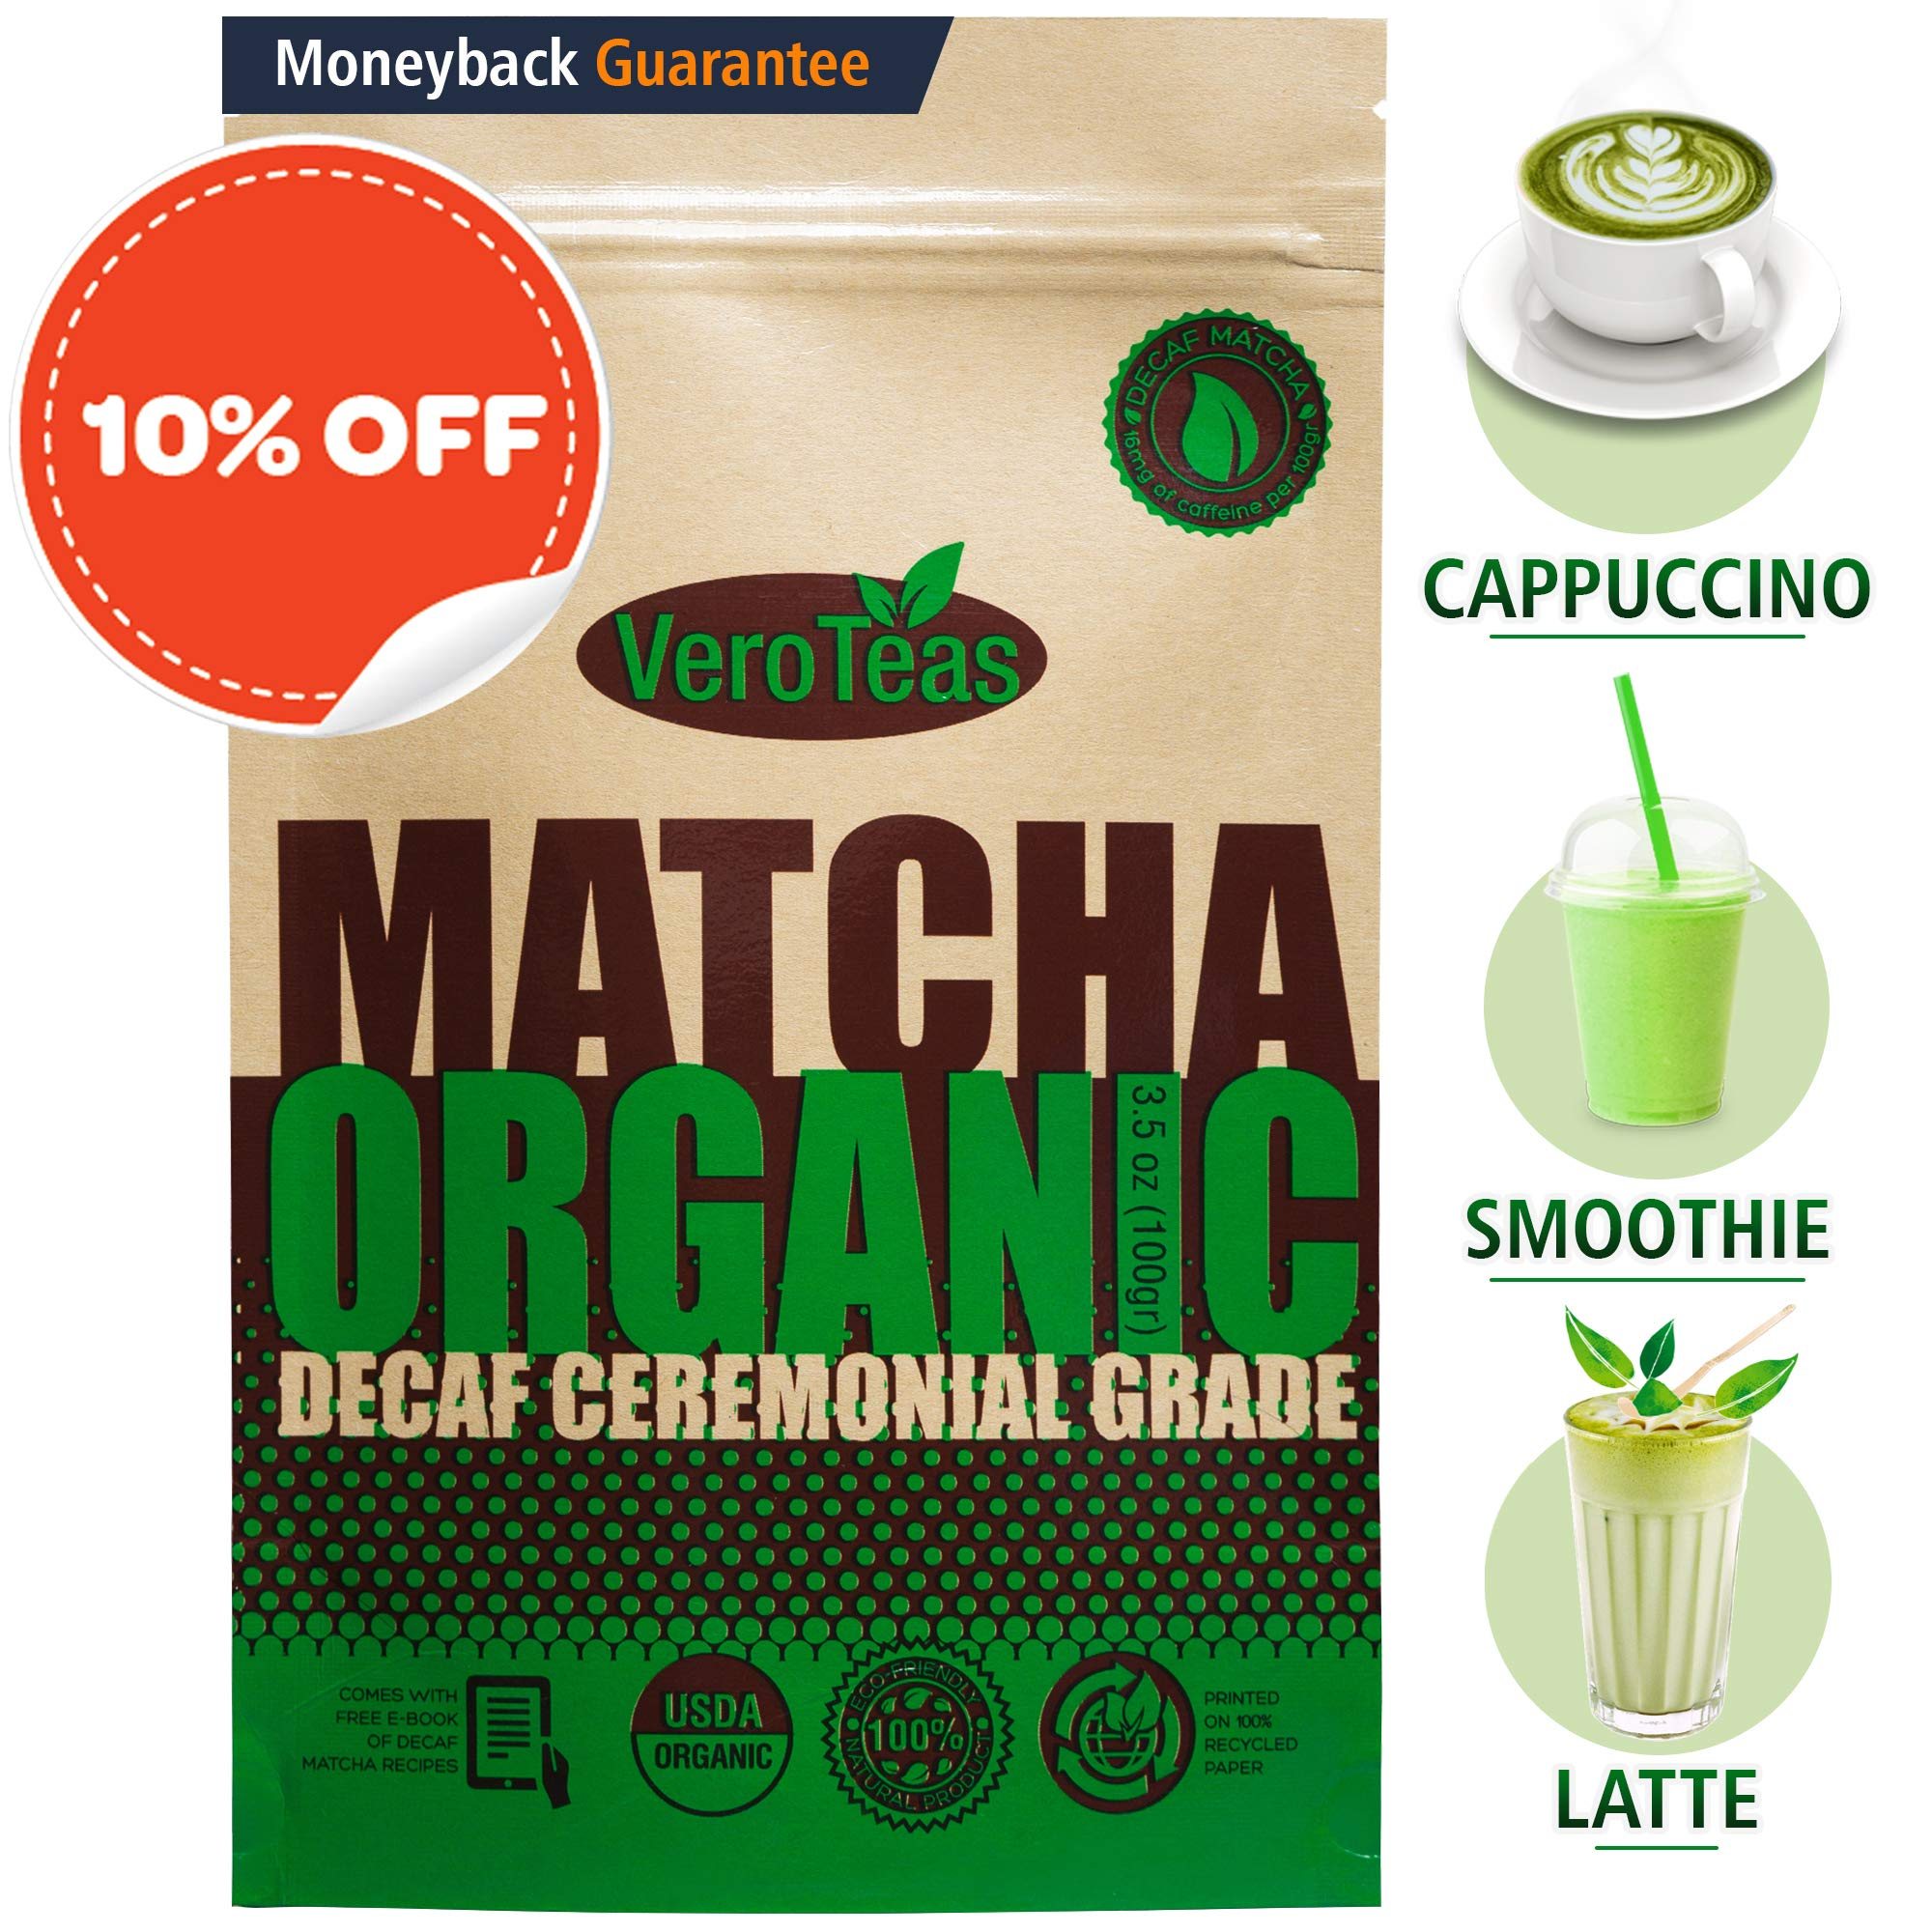 Matcha Green Tea Powder - Organic Premium Decaf Ceremonial Grade - Low Caffeine Sugar Free - USDA Certified Authentic Japanese Origin - Ideal for Latte Smoothie and Baking - Value Size 3.5oz 100g by VeroTeas